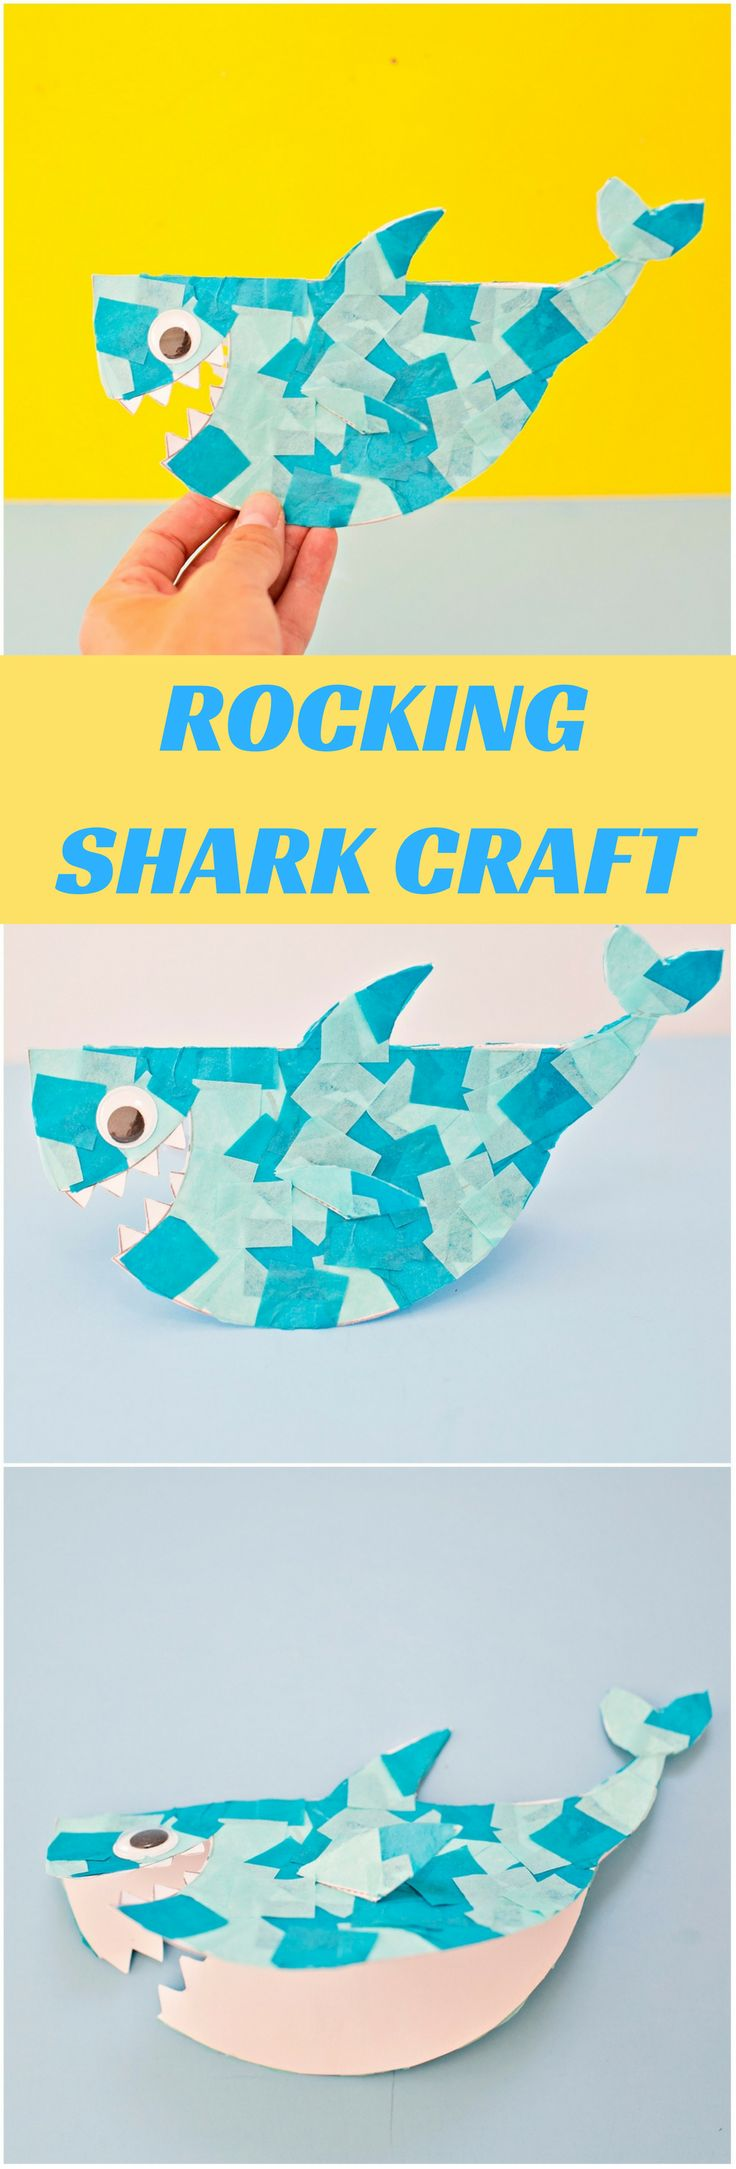 643 best Crafts for Kids images by Caitlin Underwood on Pinterest ...